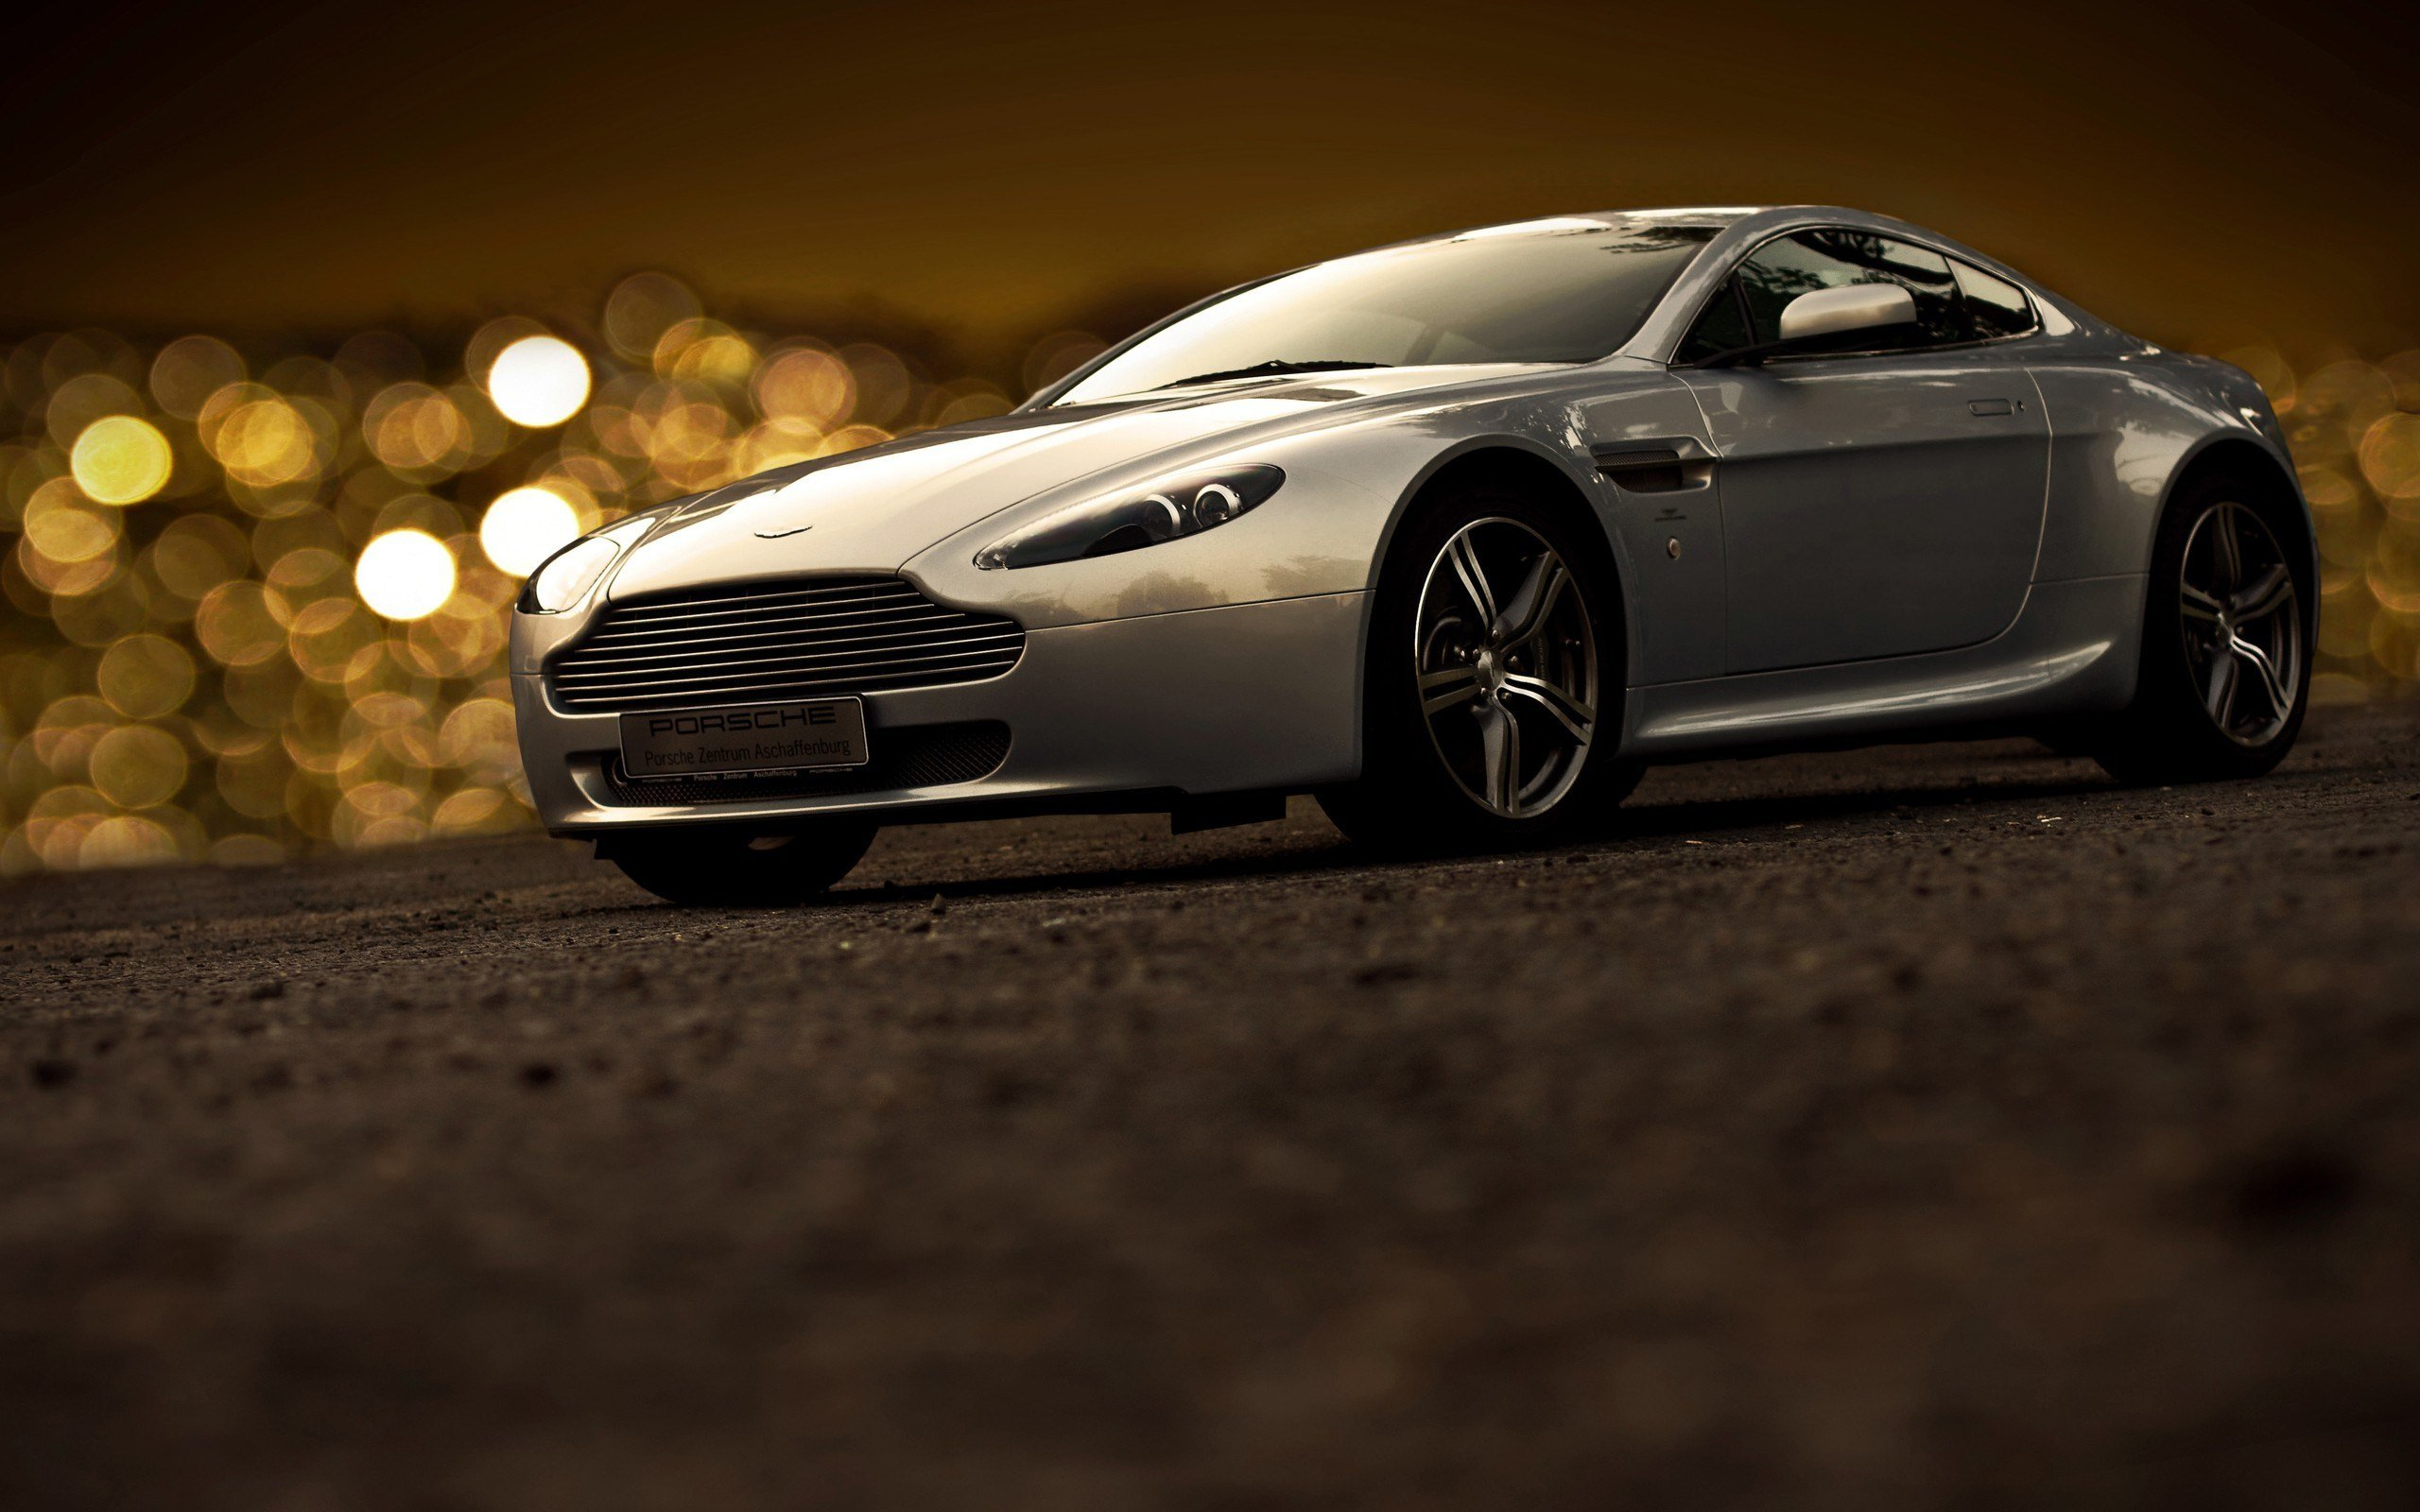 Latest Aston Martin Bokeh Cars Vehicles Wallpaper Allwallpaper Free Download